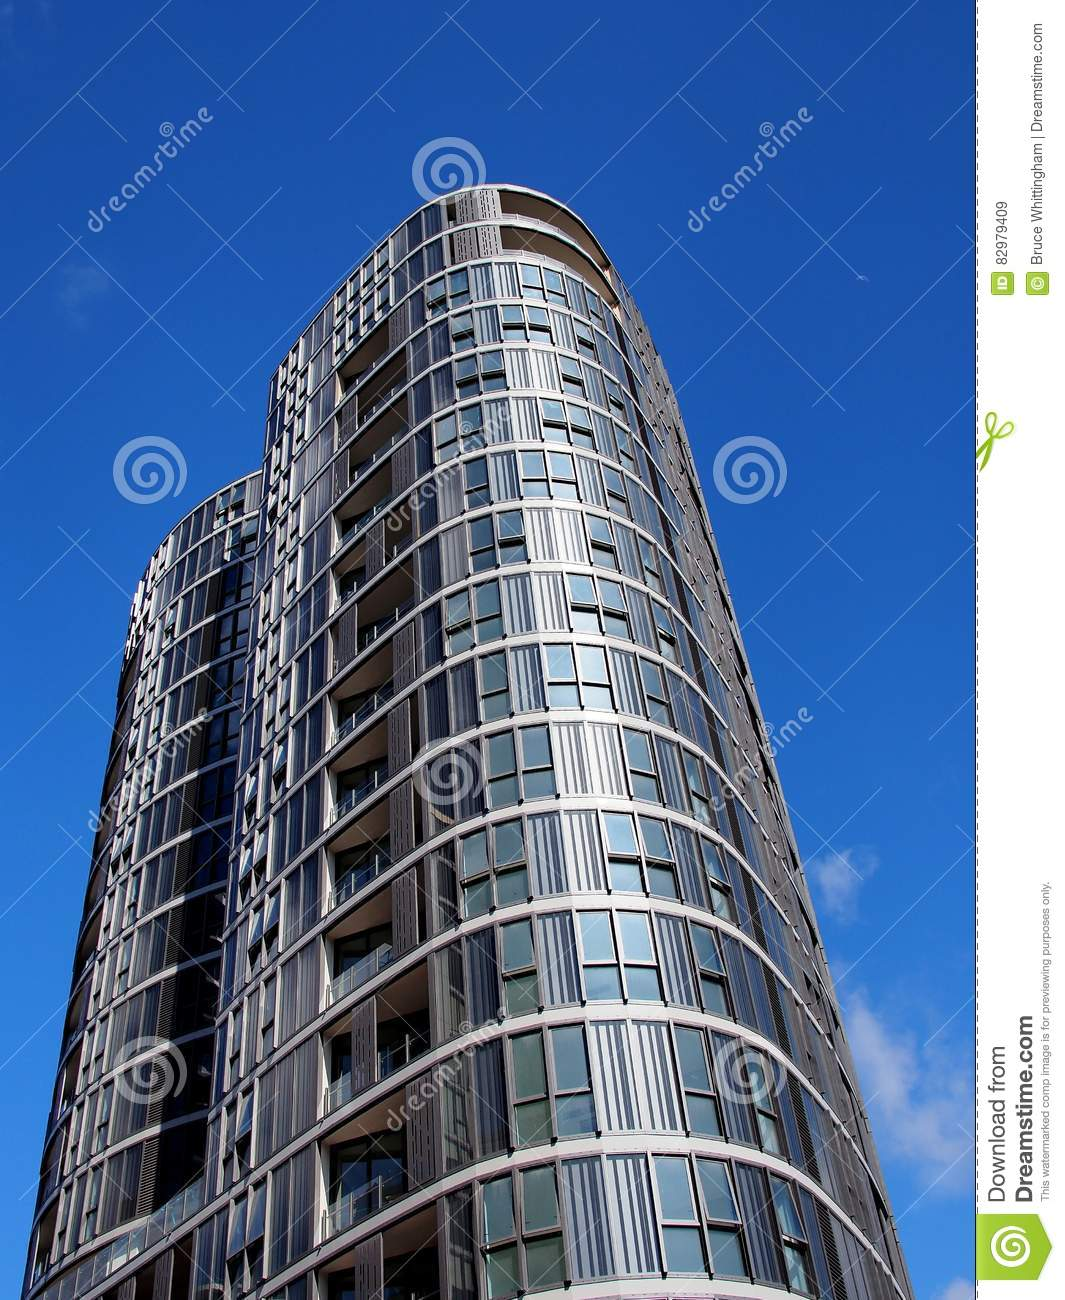 High Rise Apartments: Modern High Rise Apartment Building Stock Image